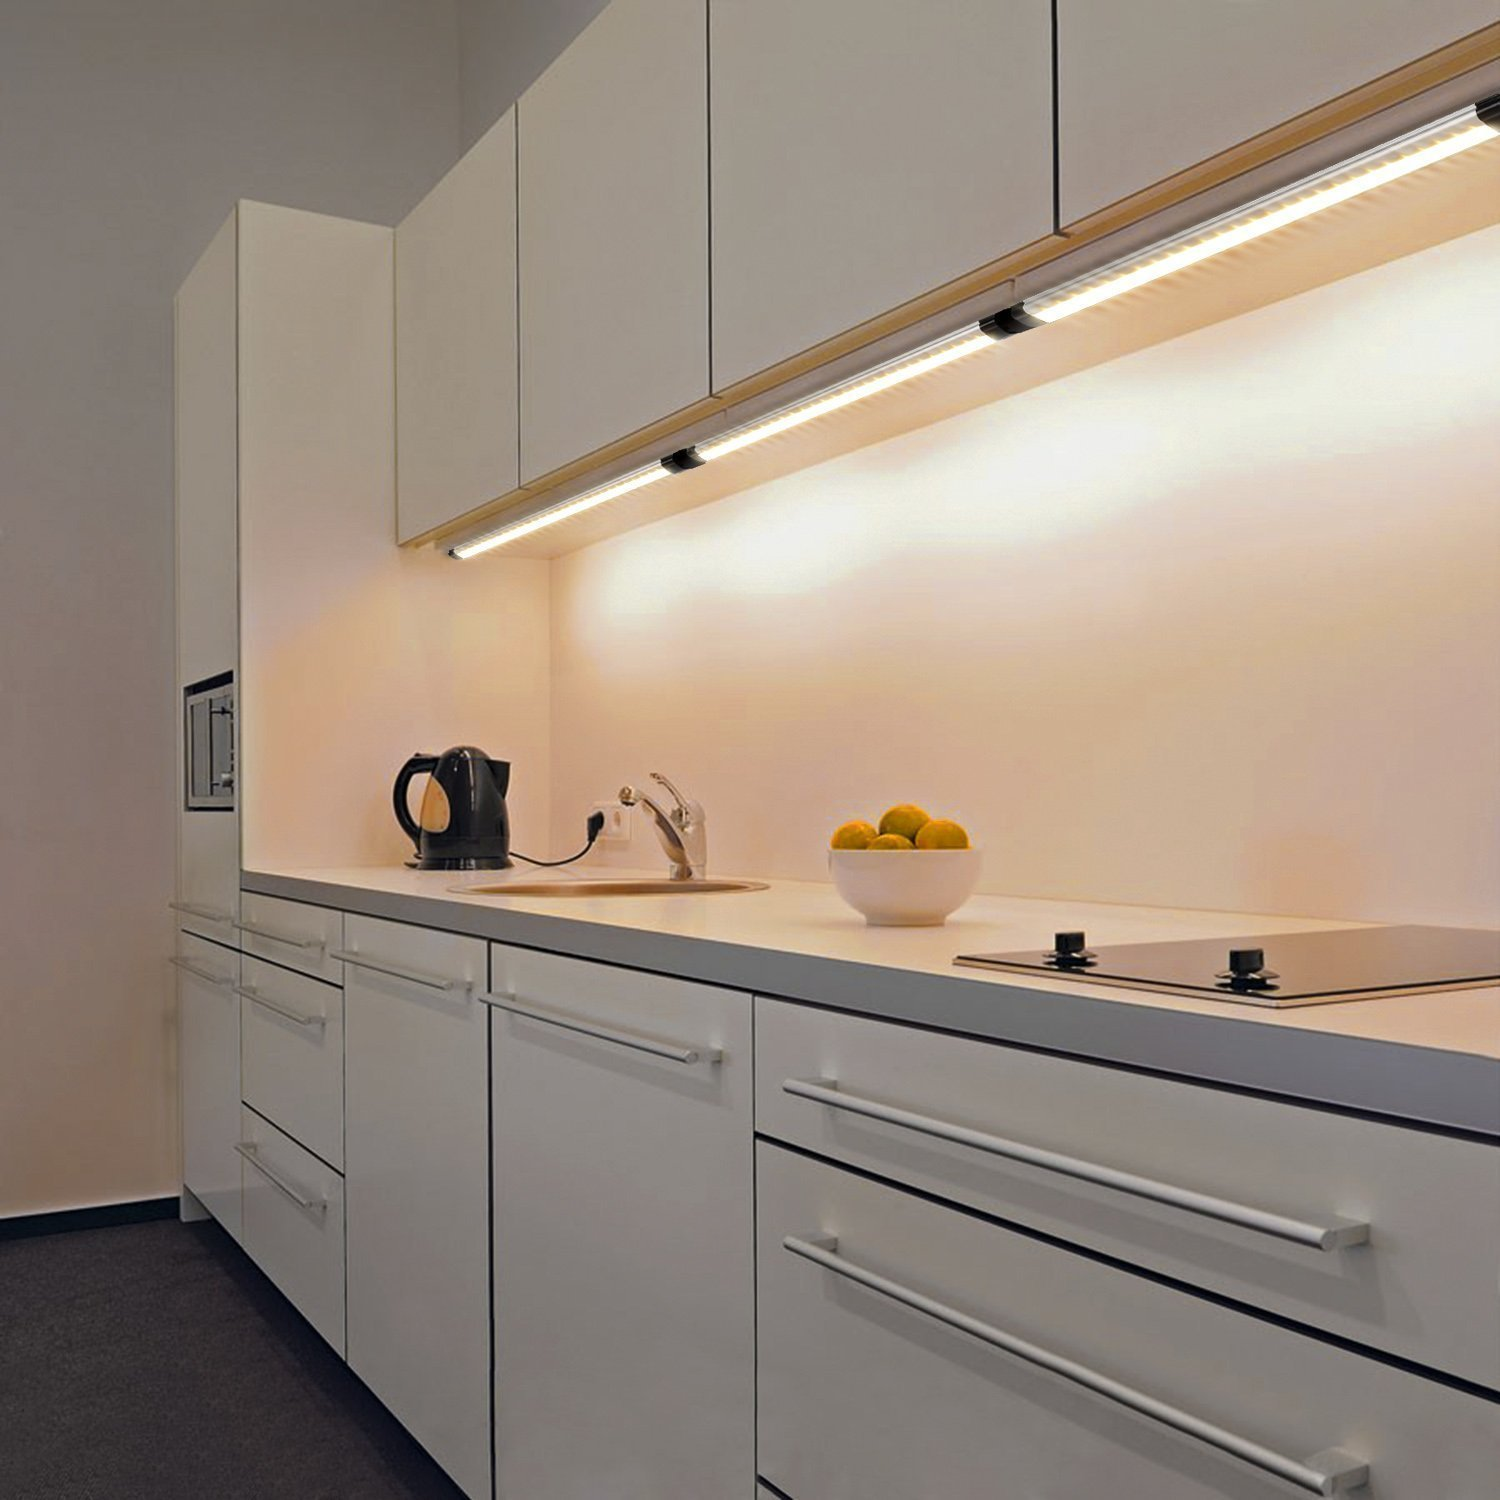 Kitchen Lighting Ideas India: Dimmable Under Cabinet Lightning